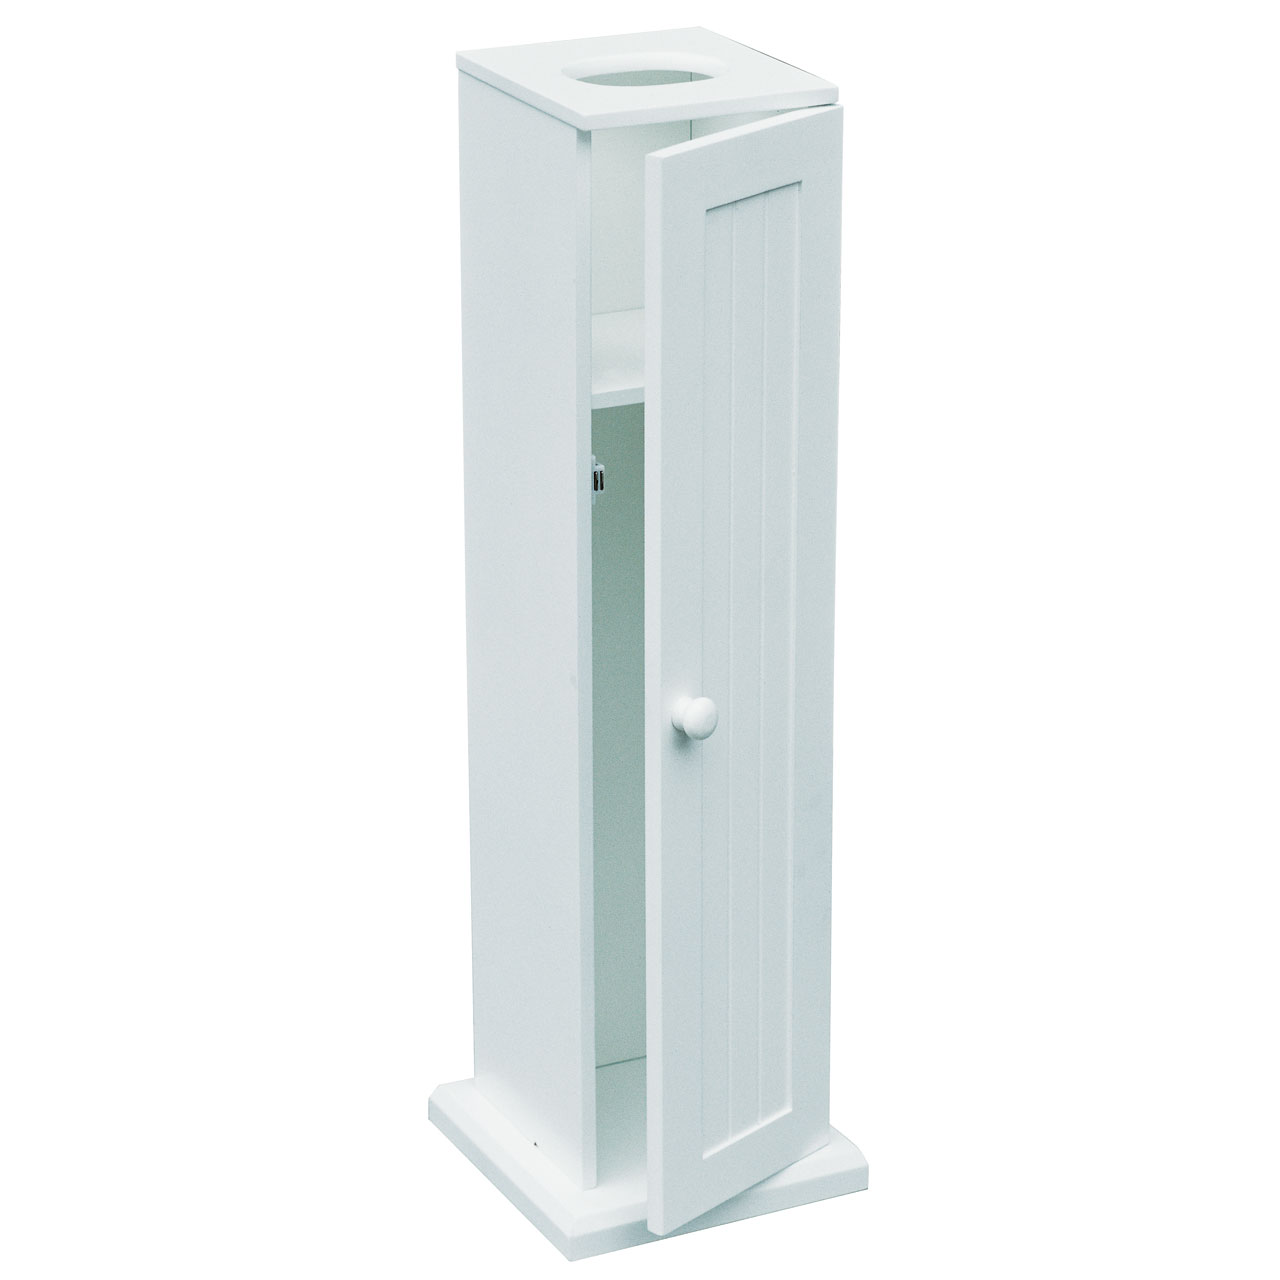 new white wood portland toilet paper cabinet 5 roll storage 65cm high ebay. Black Bedroom Furniture Sets. Home Design Ideas